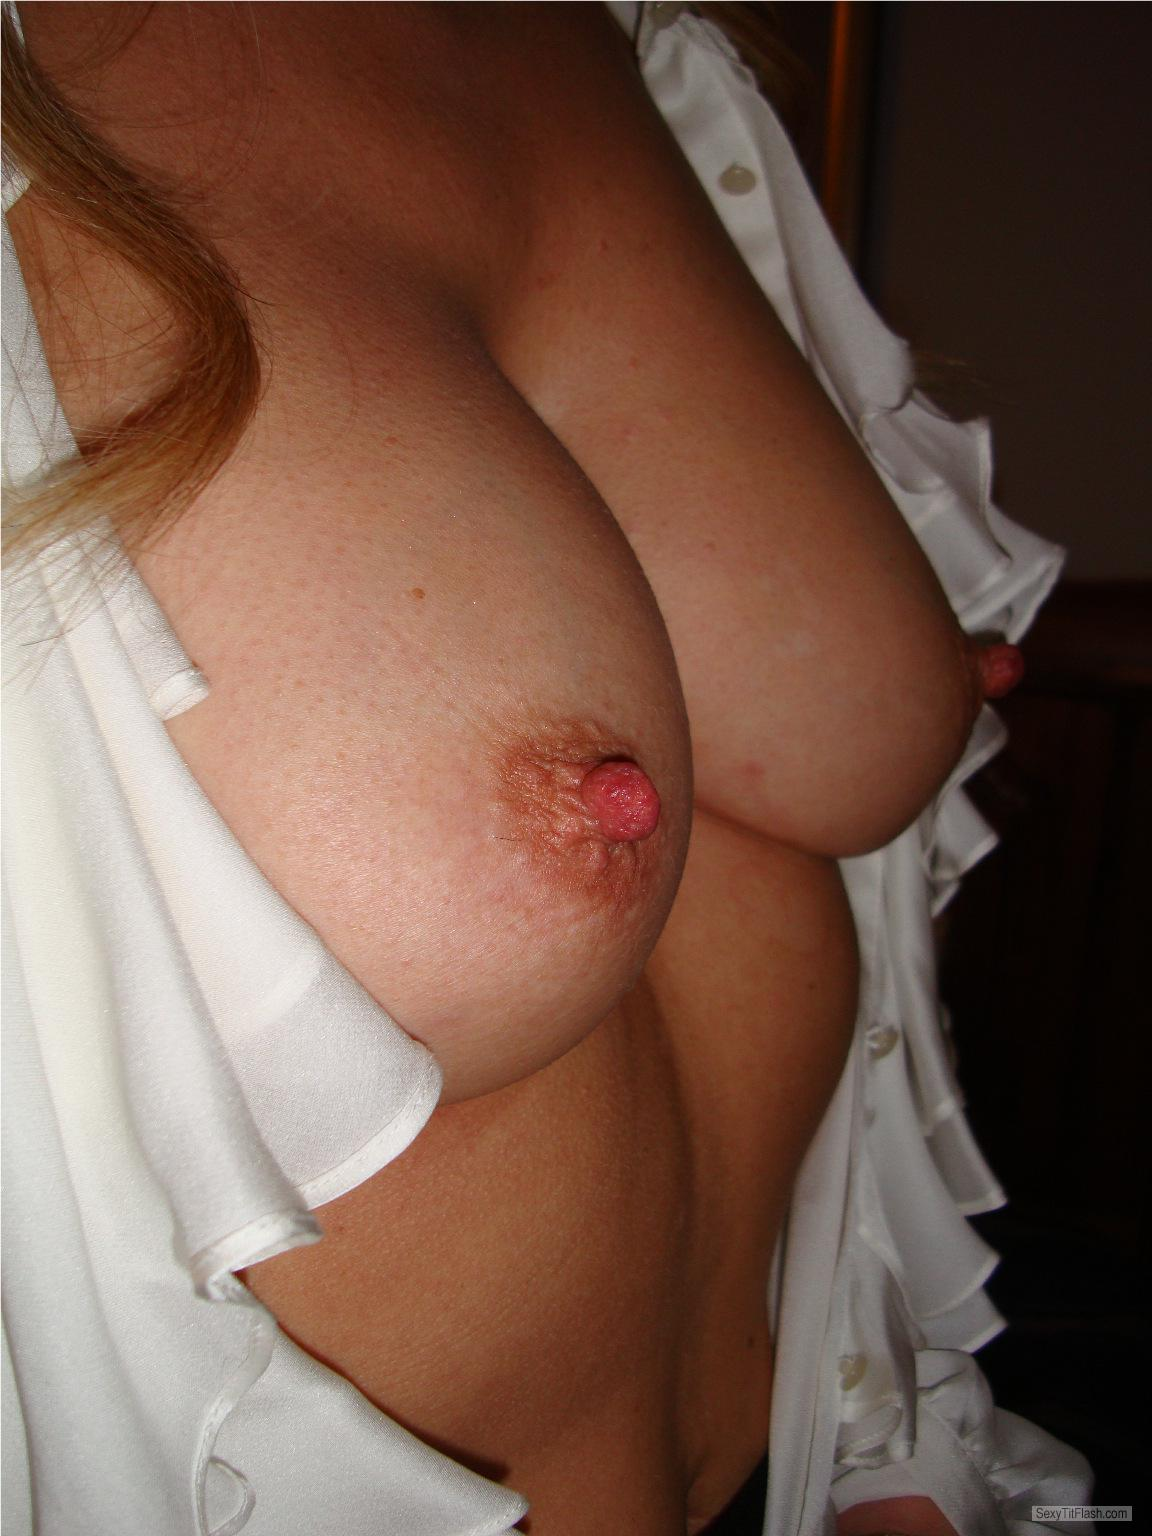 Rate my girlfriend boobs